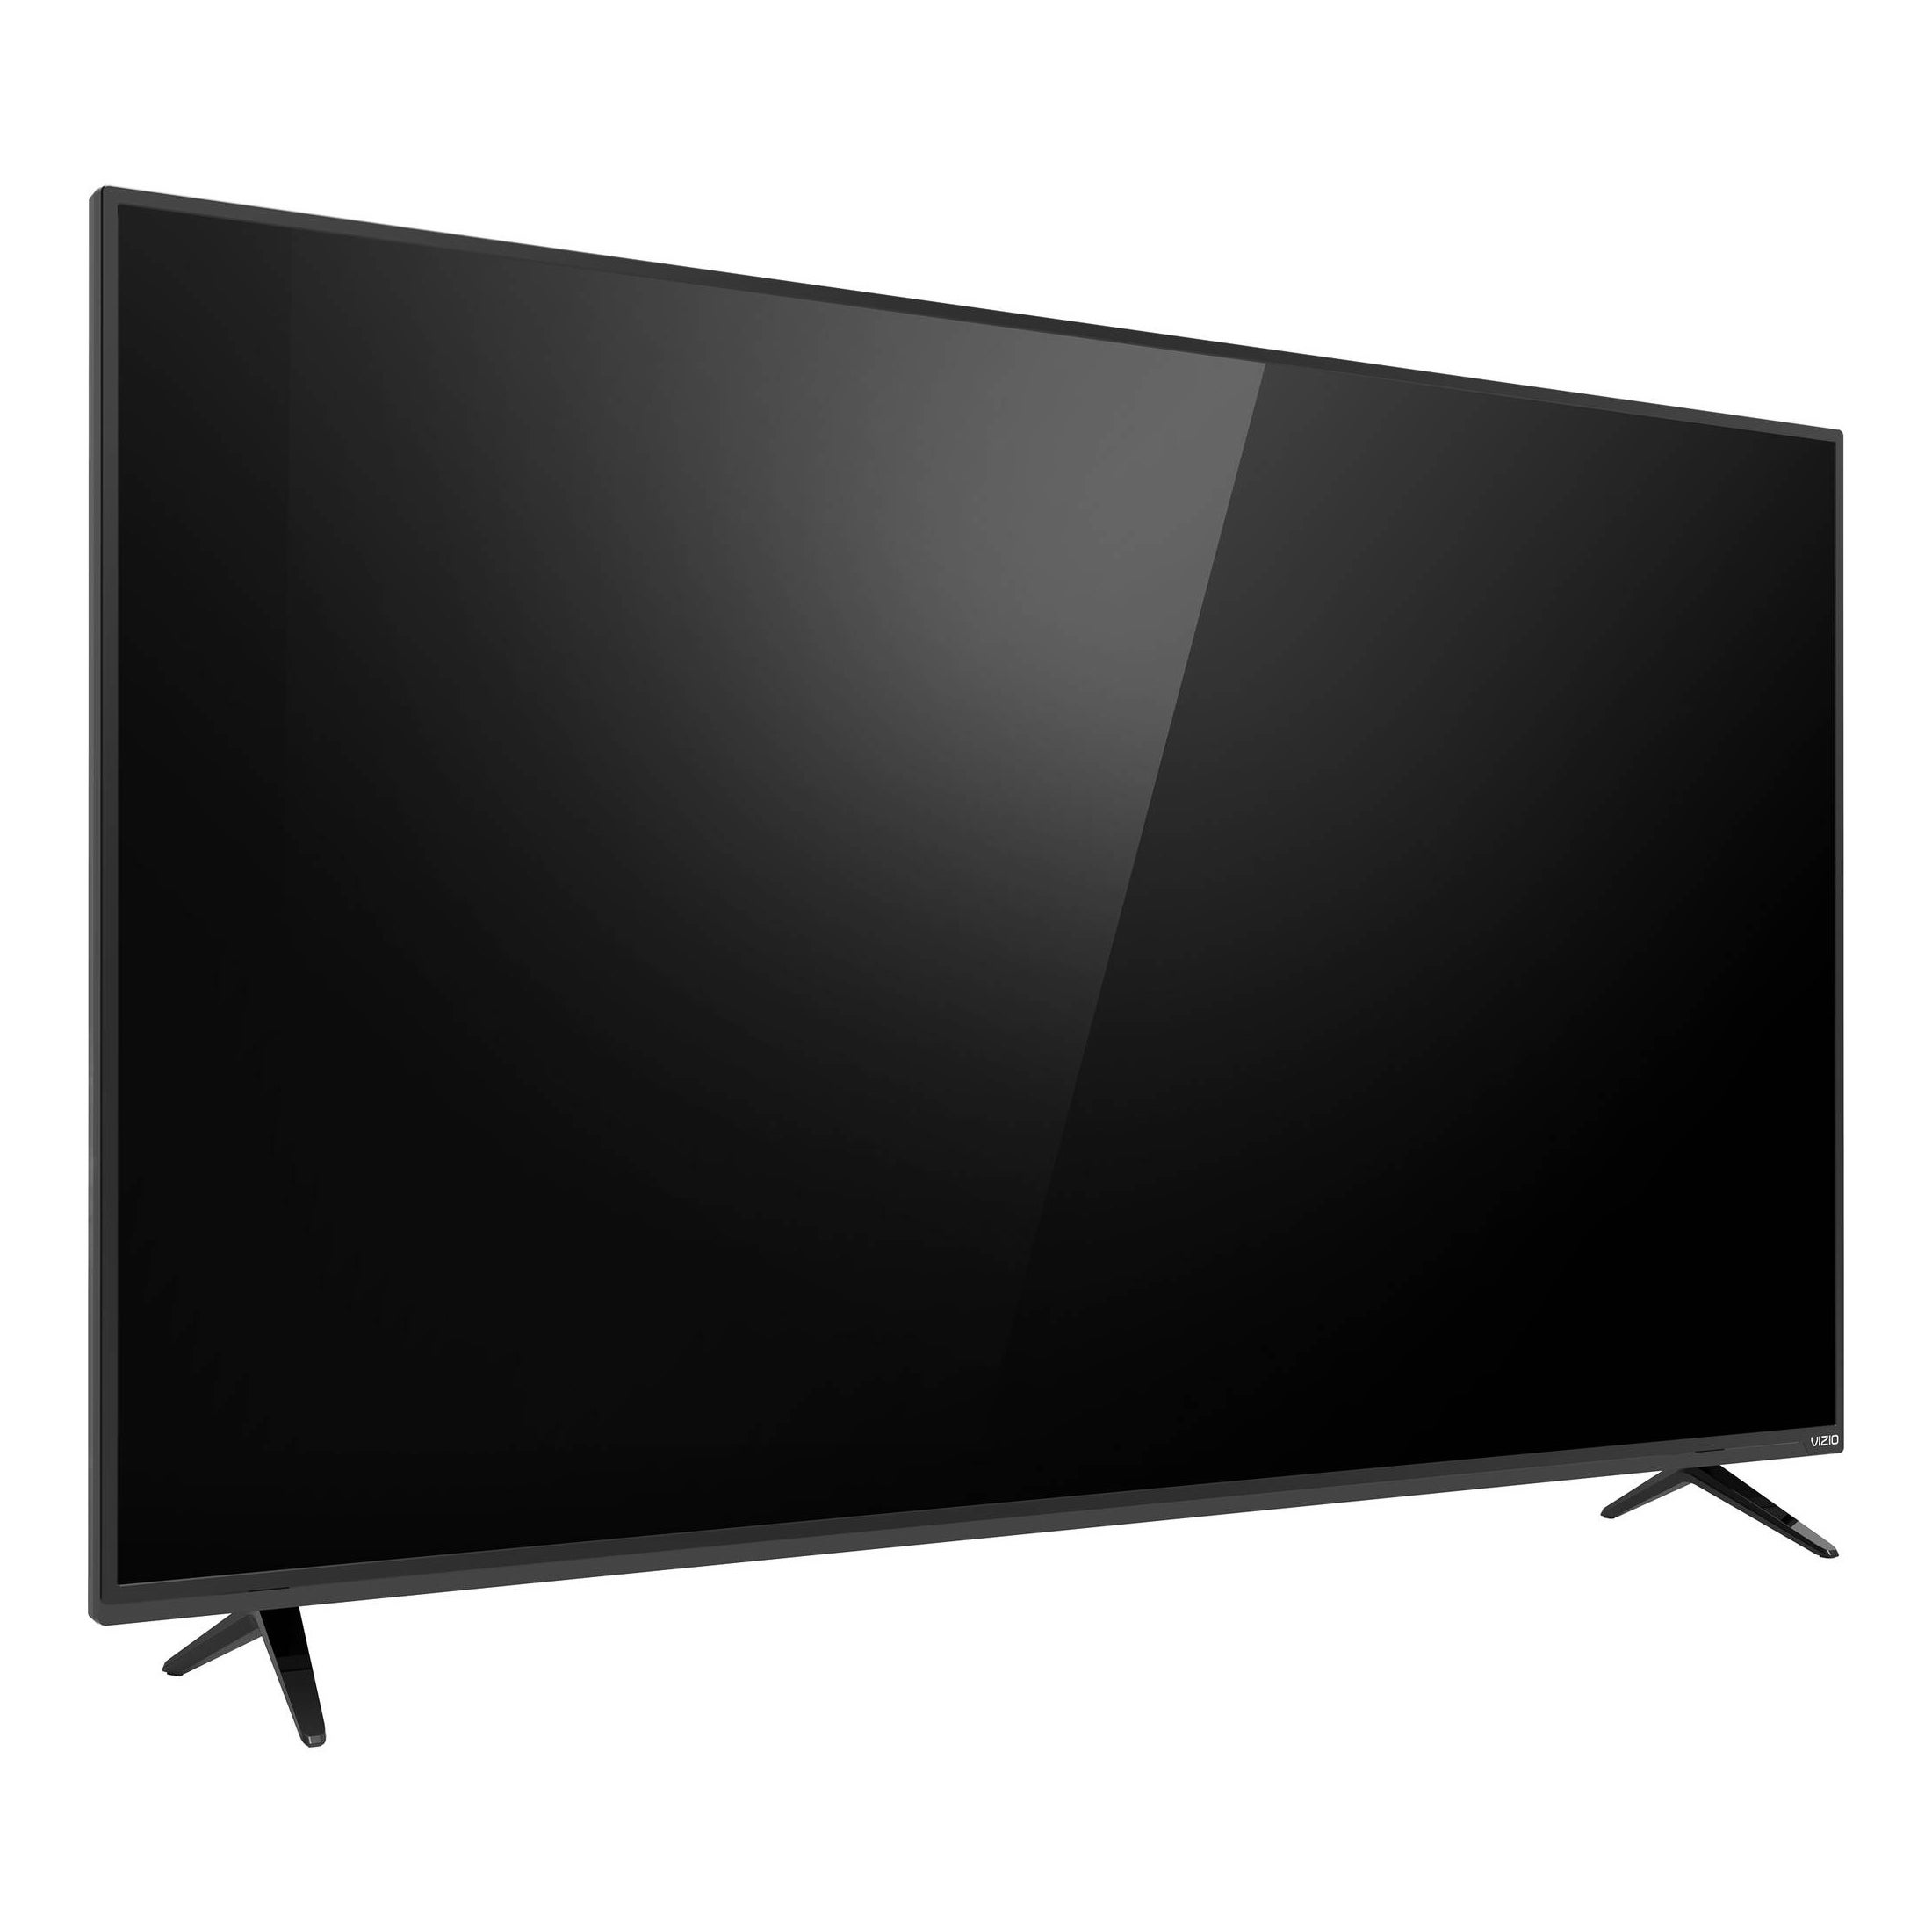 Shop Vizio 70 Inch 1080p Smart 240hz Hd Led Hdtv With Wifi E70 C3